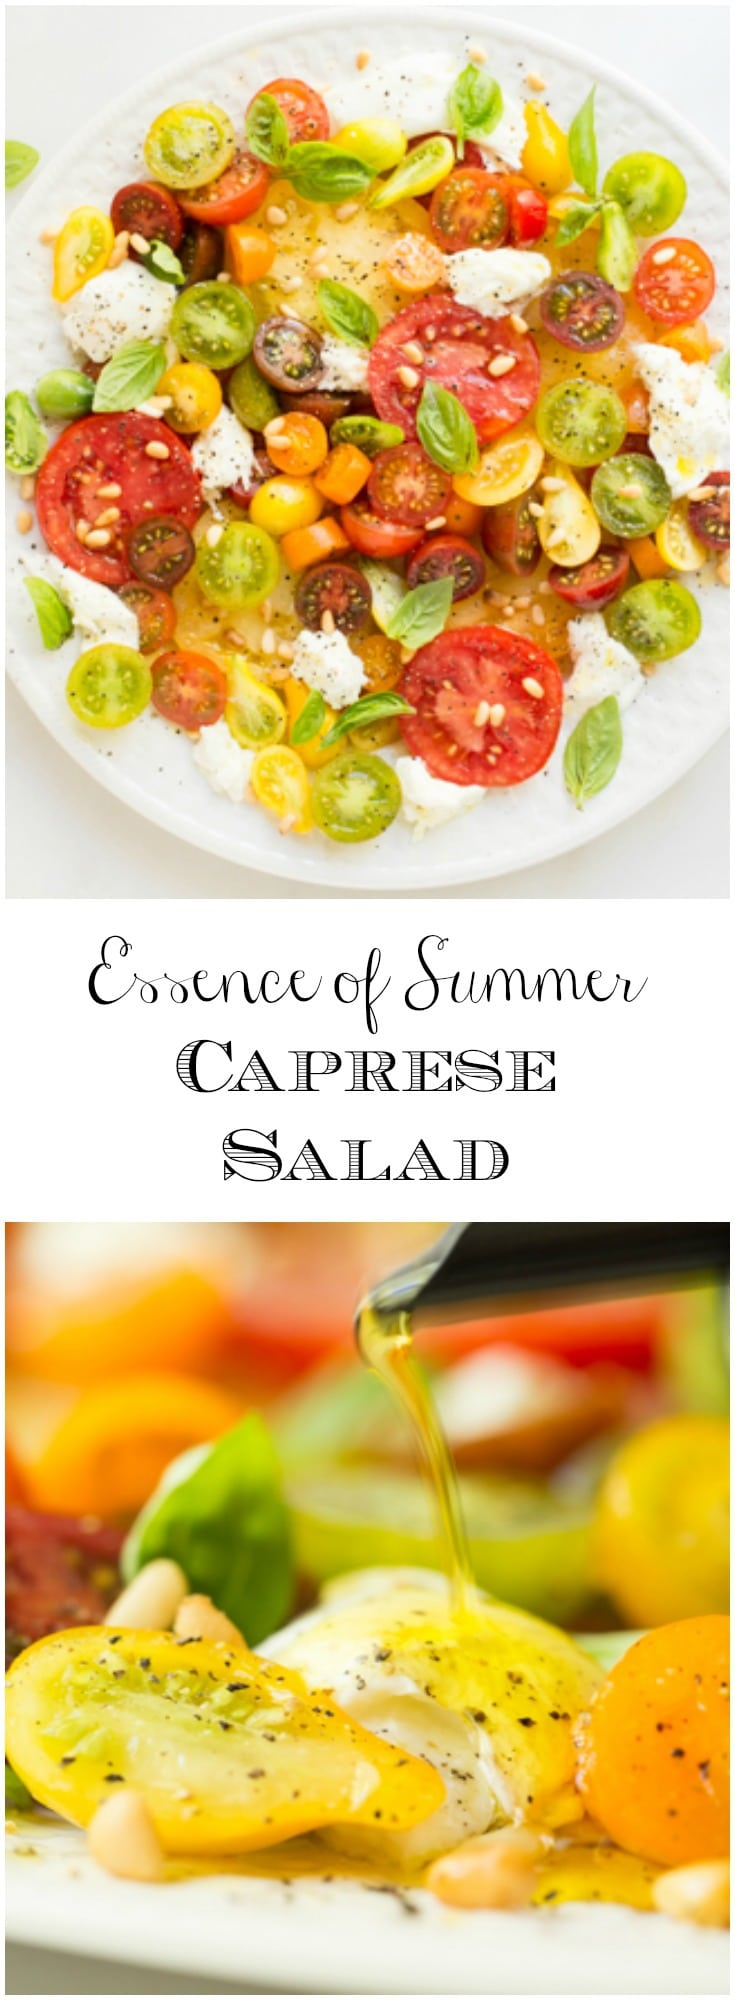 This simple delicious Caprese Salad is made with summer's best ingredients and makes a gorgeous presentation.